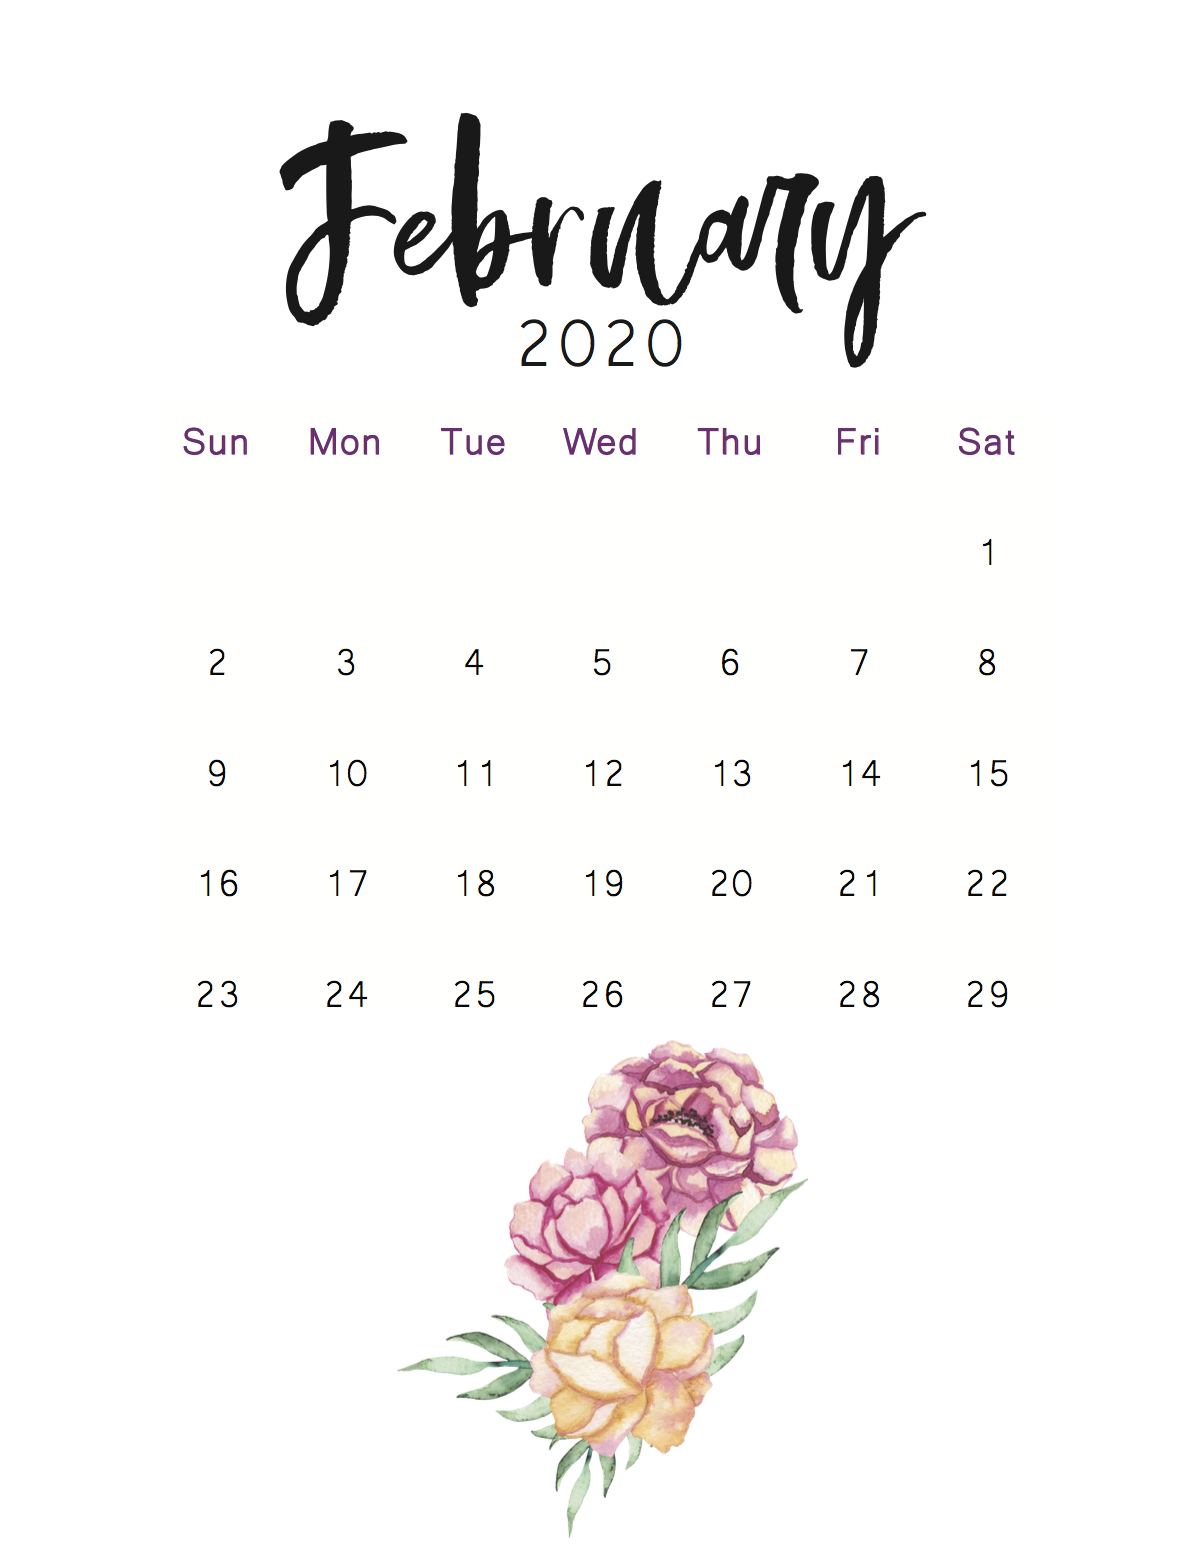 Calendrier Salon Vintage 2021 30 Free February 2020 Calendars for Home or Office   Onedesblog in